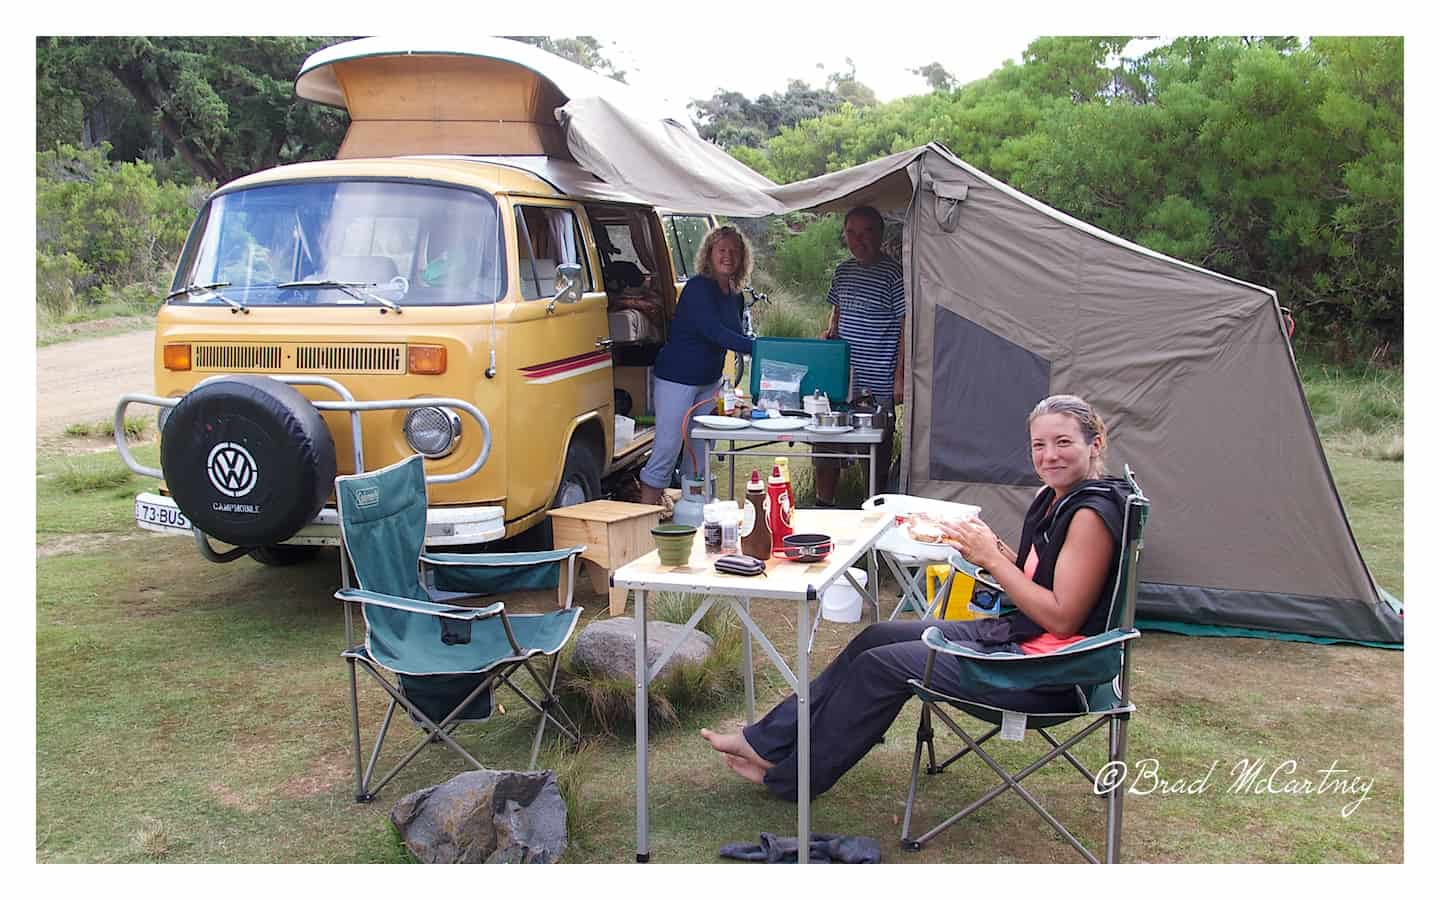 Jen and Laurance at the free campground at the end of the hike at Cockle Creek, so civilised